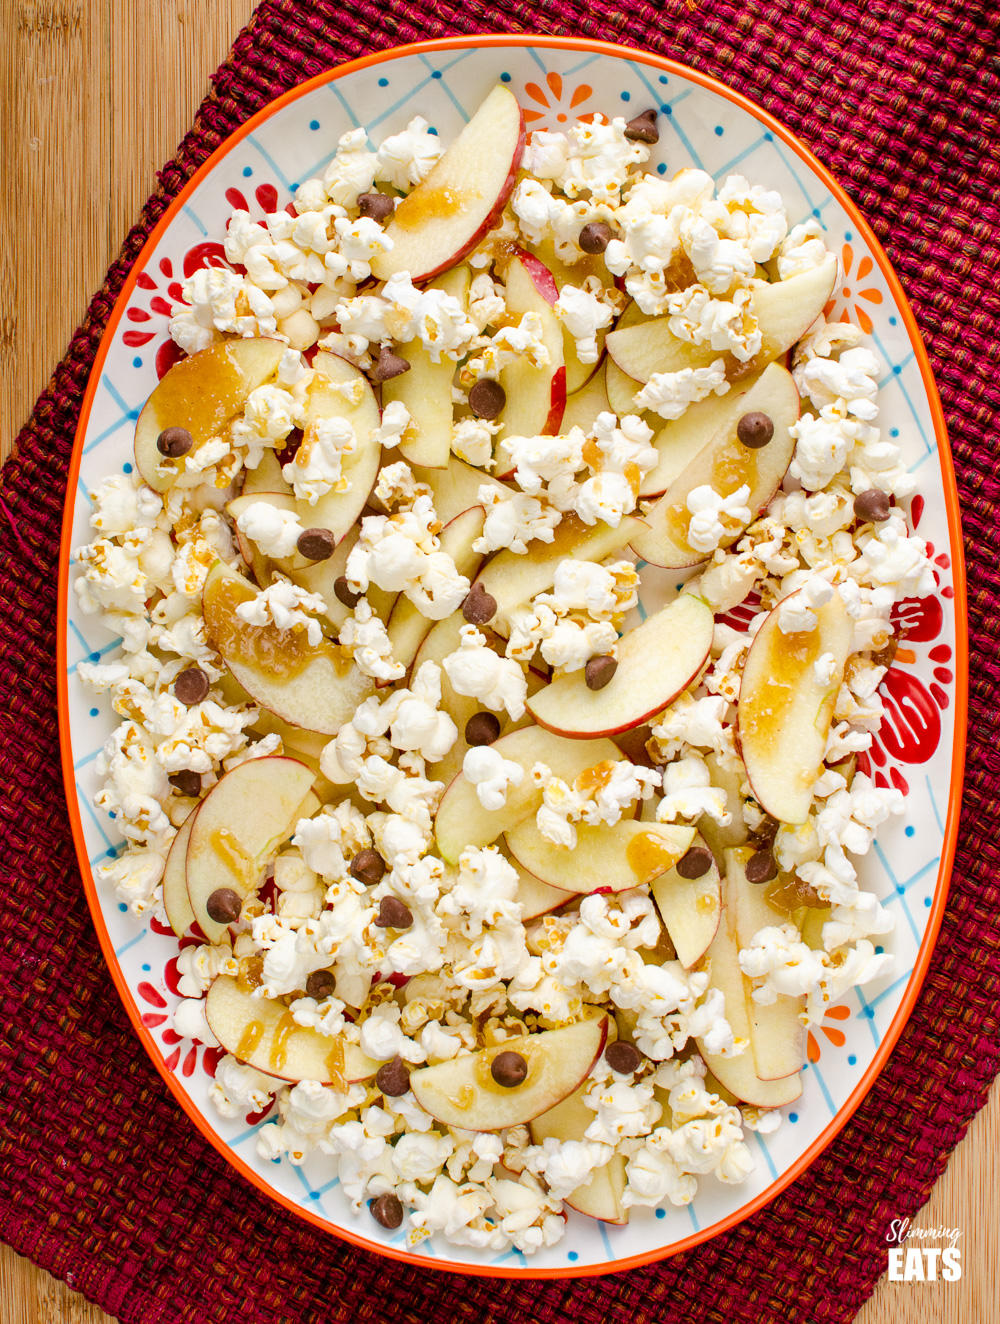 patterned oval plate filled with popcorn, chocolate chips, apple slices and caramel sauce for a sharing plate of caramel apple popcorn nachos